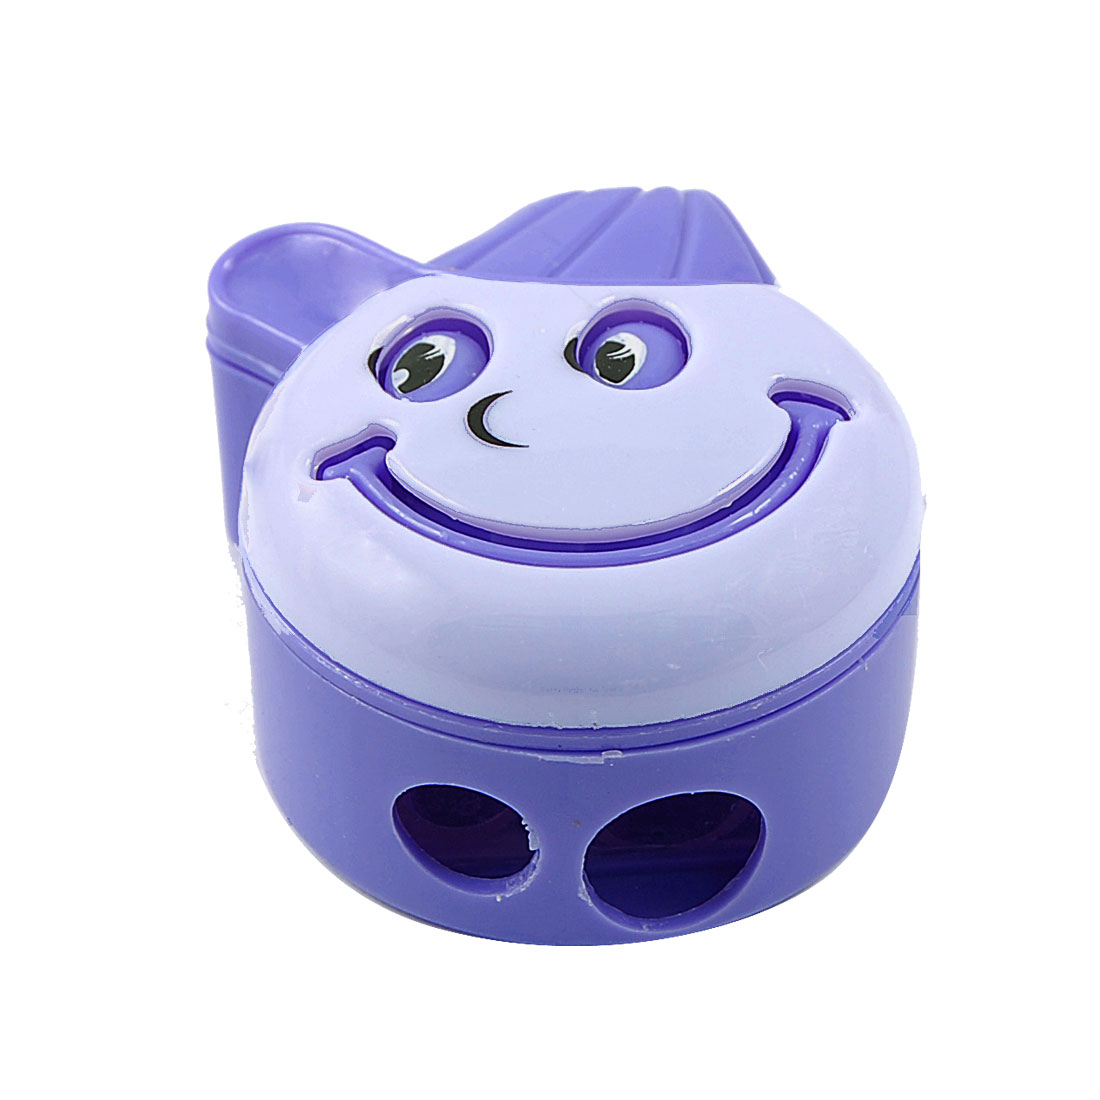 Dual Holes Metal Edge Milling Smile Face Protable Pencil Sharpener Purple